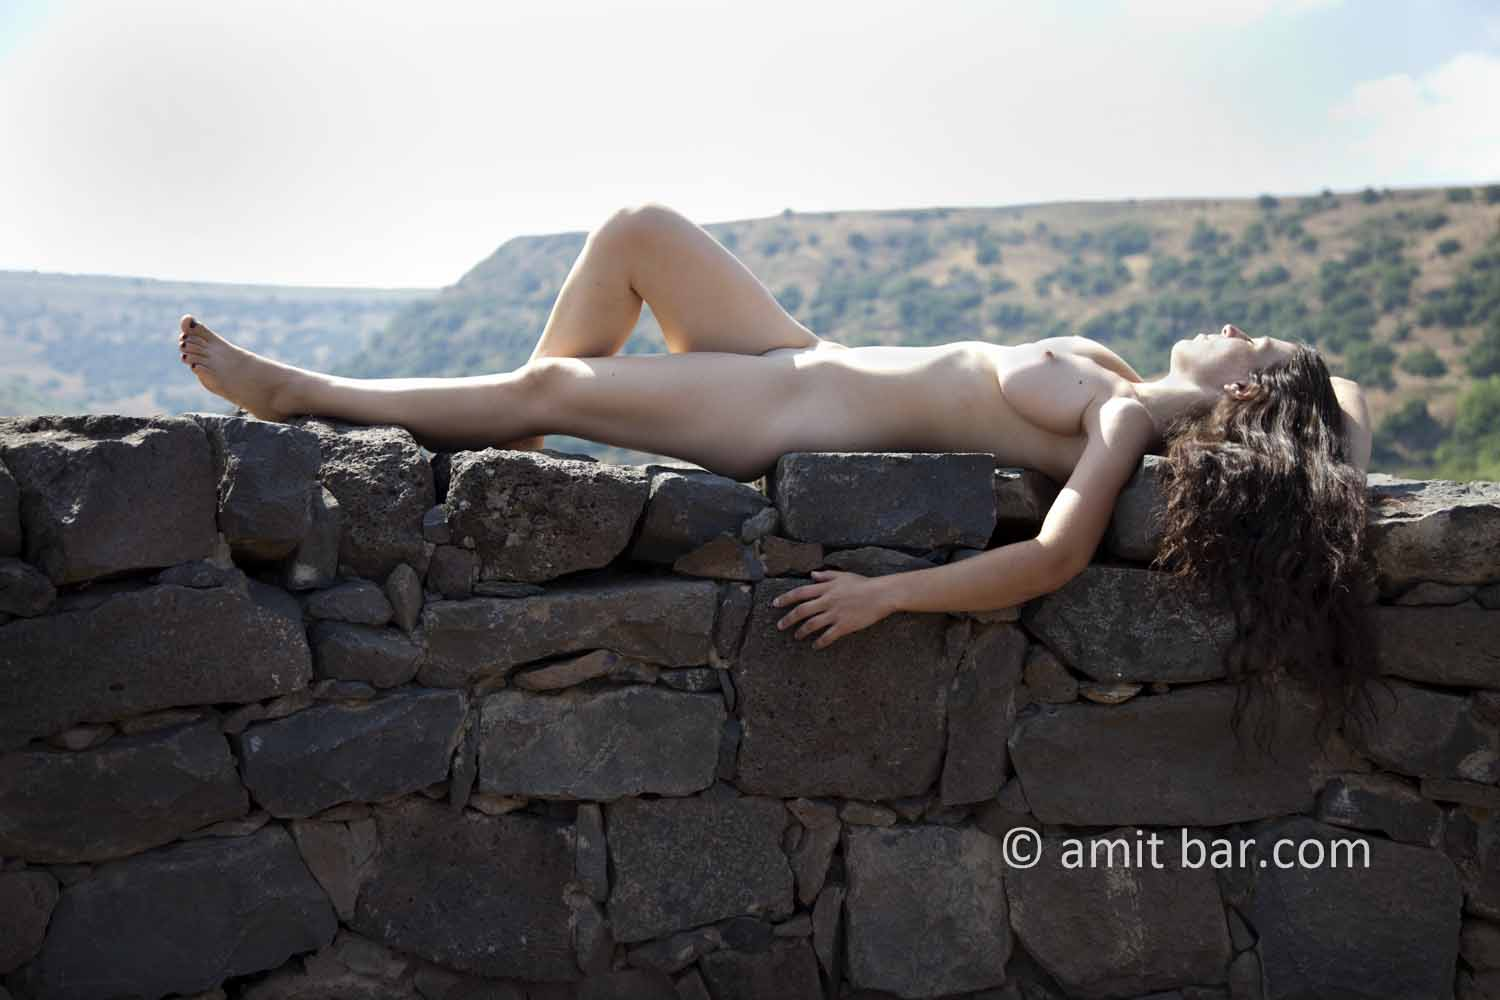 Gamla IV: Nude model at Gamla fortress, the Golan Heights